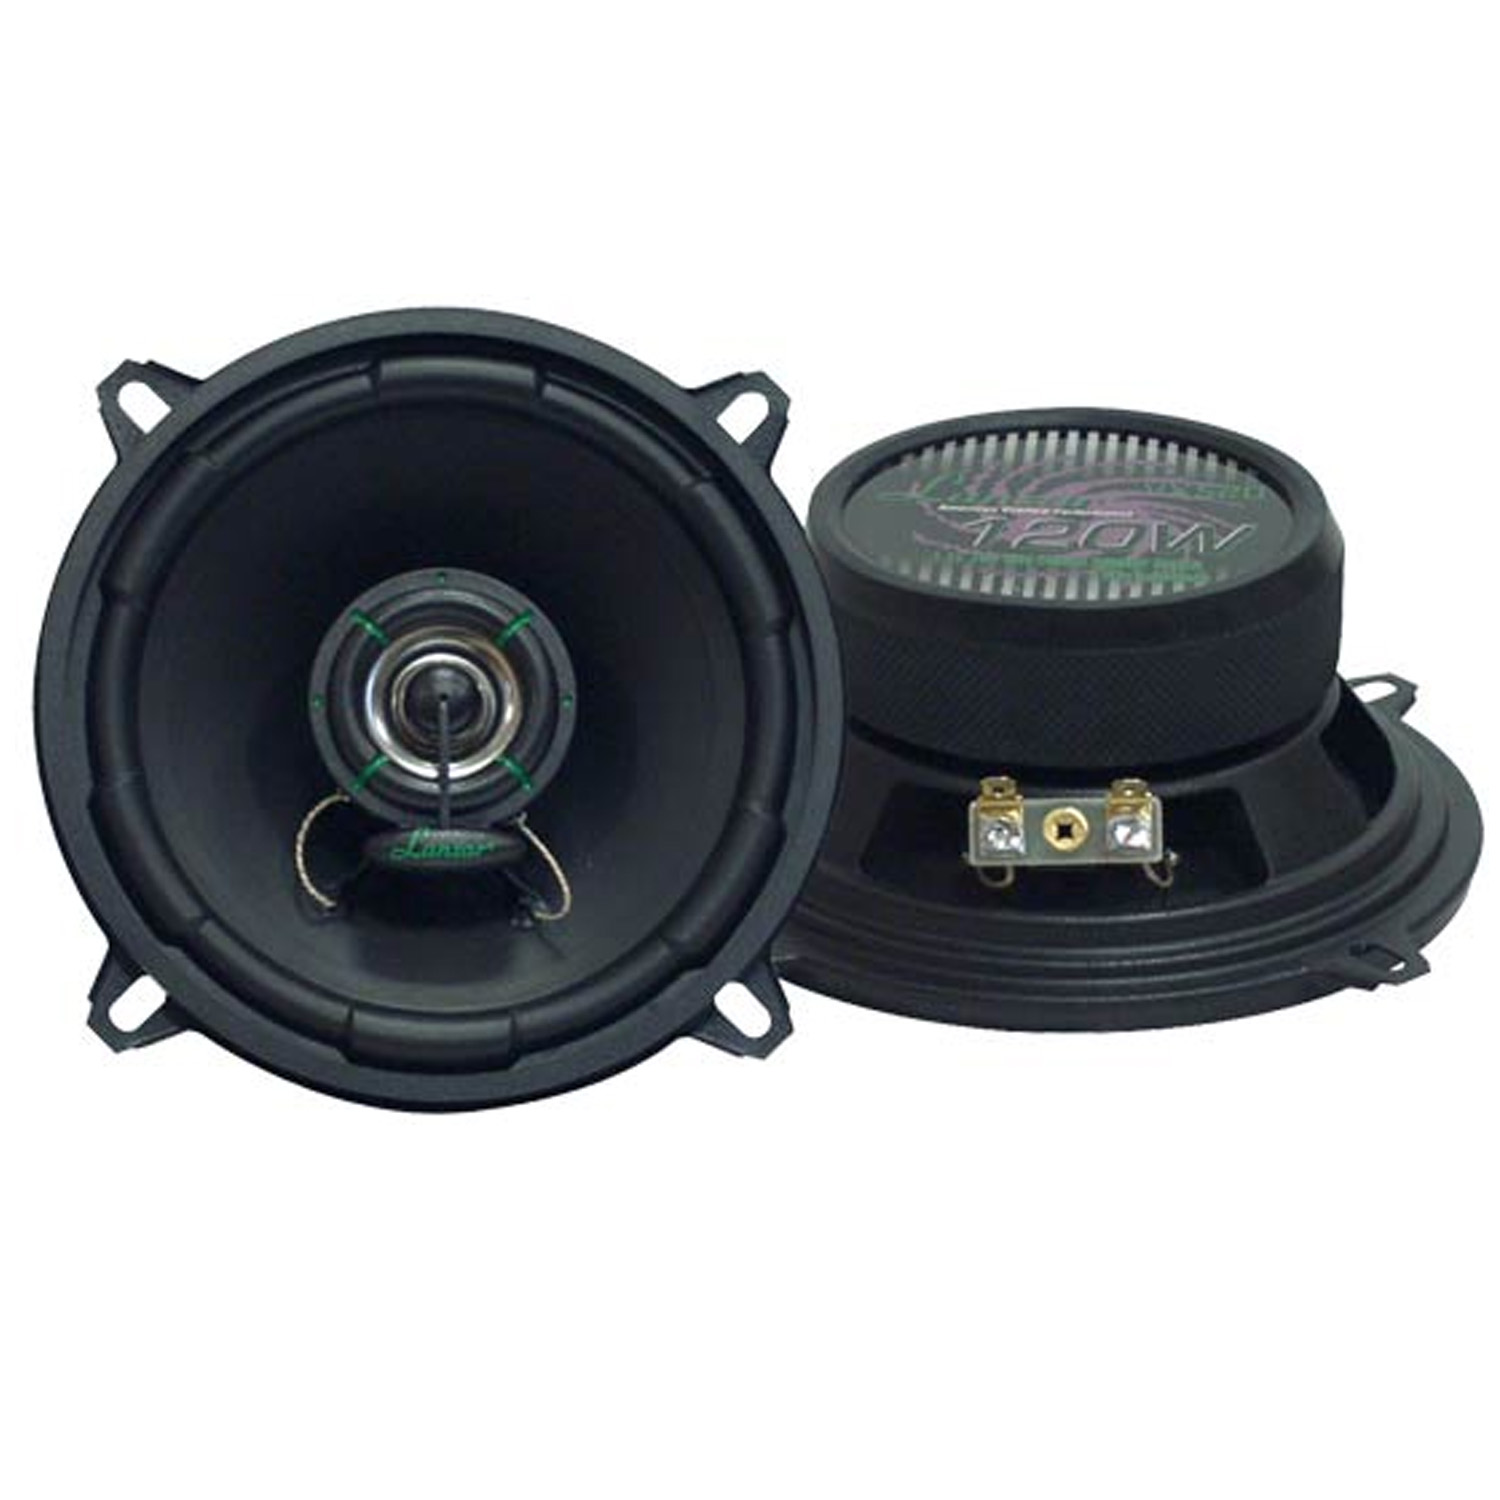 "Lanzar VX 5.25"" Two-Way Speakers"